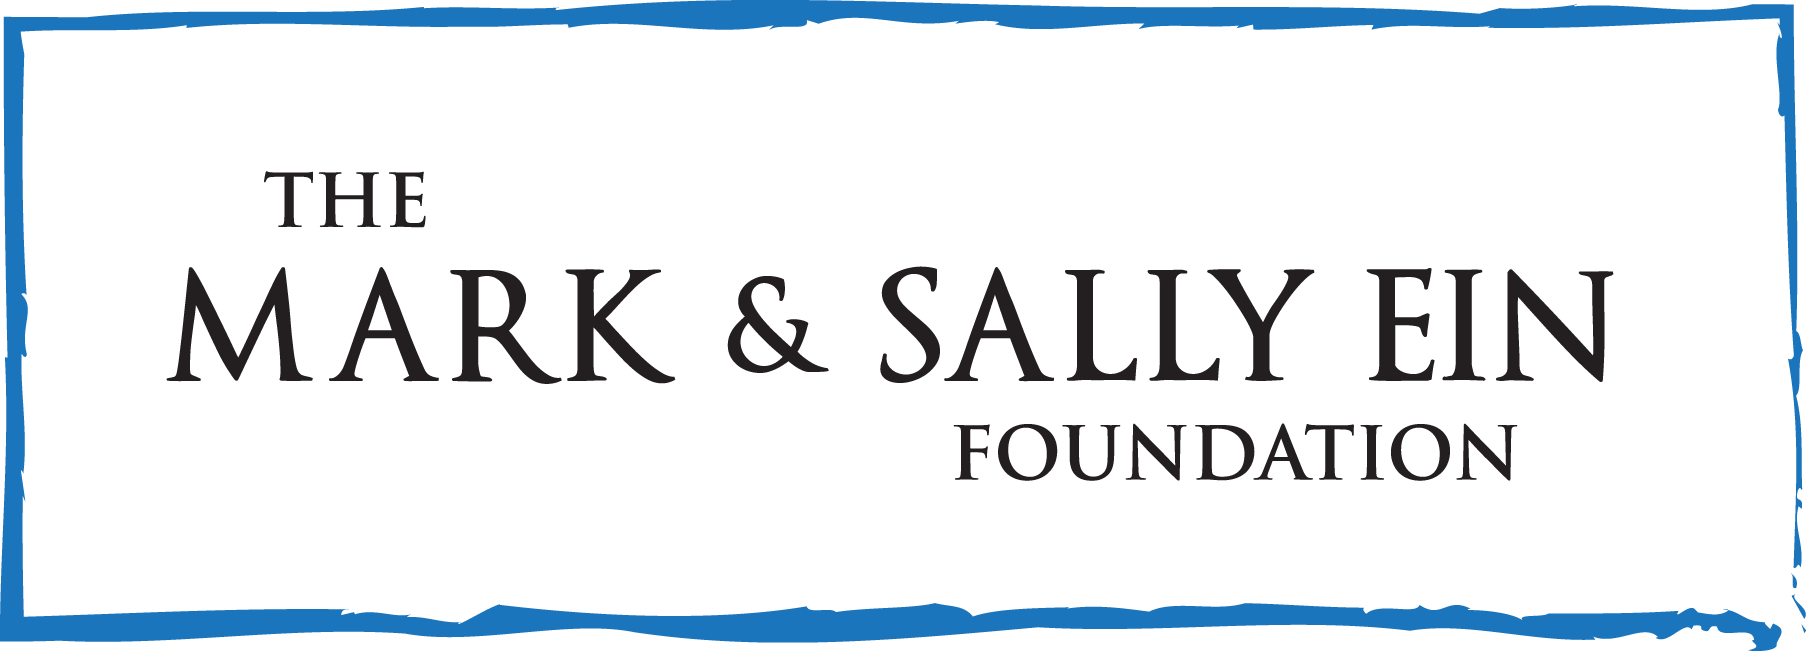 Mark & Sally Foundation logo.png